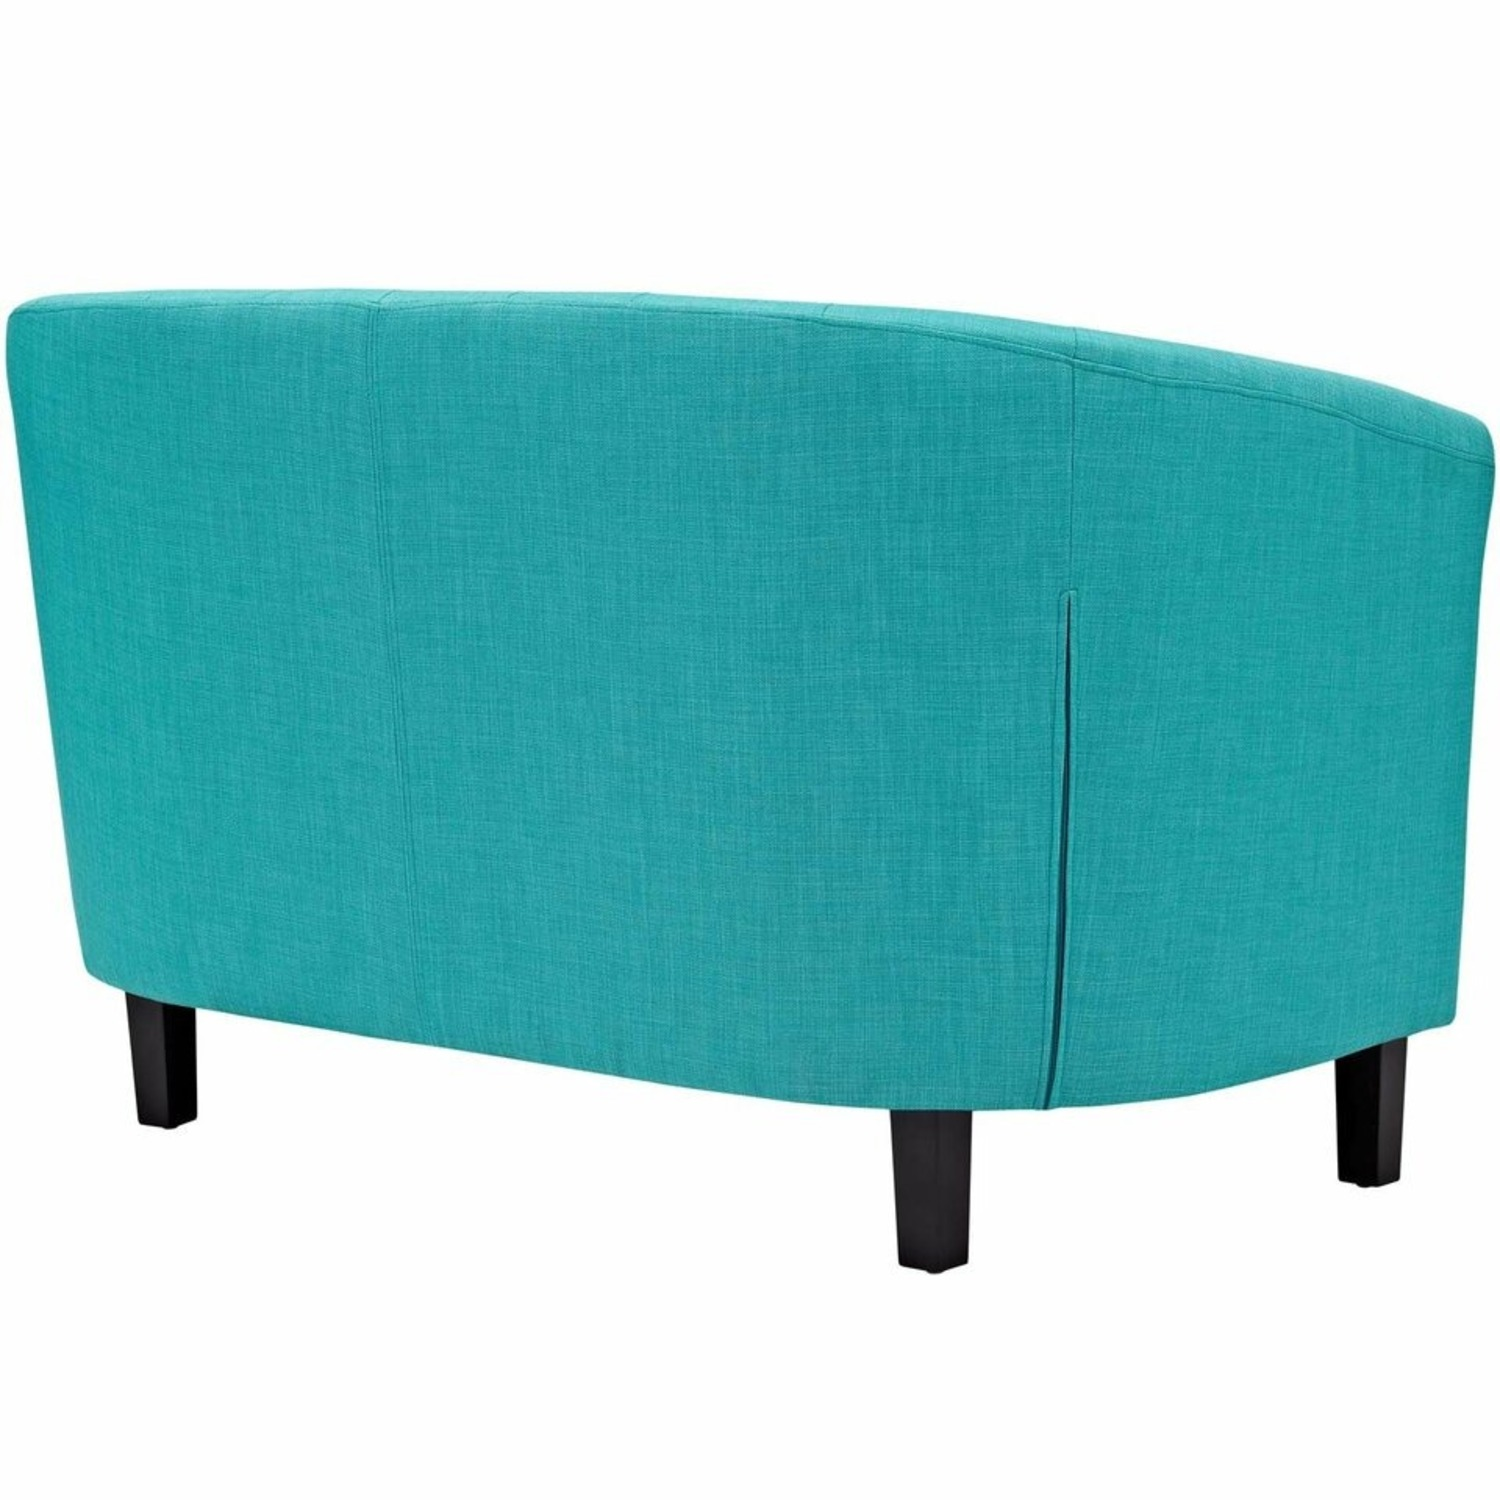 Modern Loveseat In Pure Water Fabric Upholstery - image-2